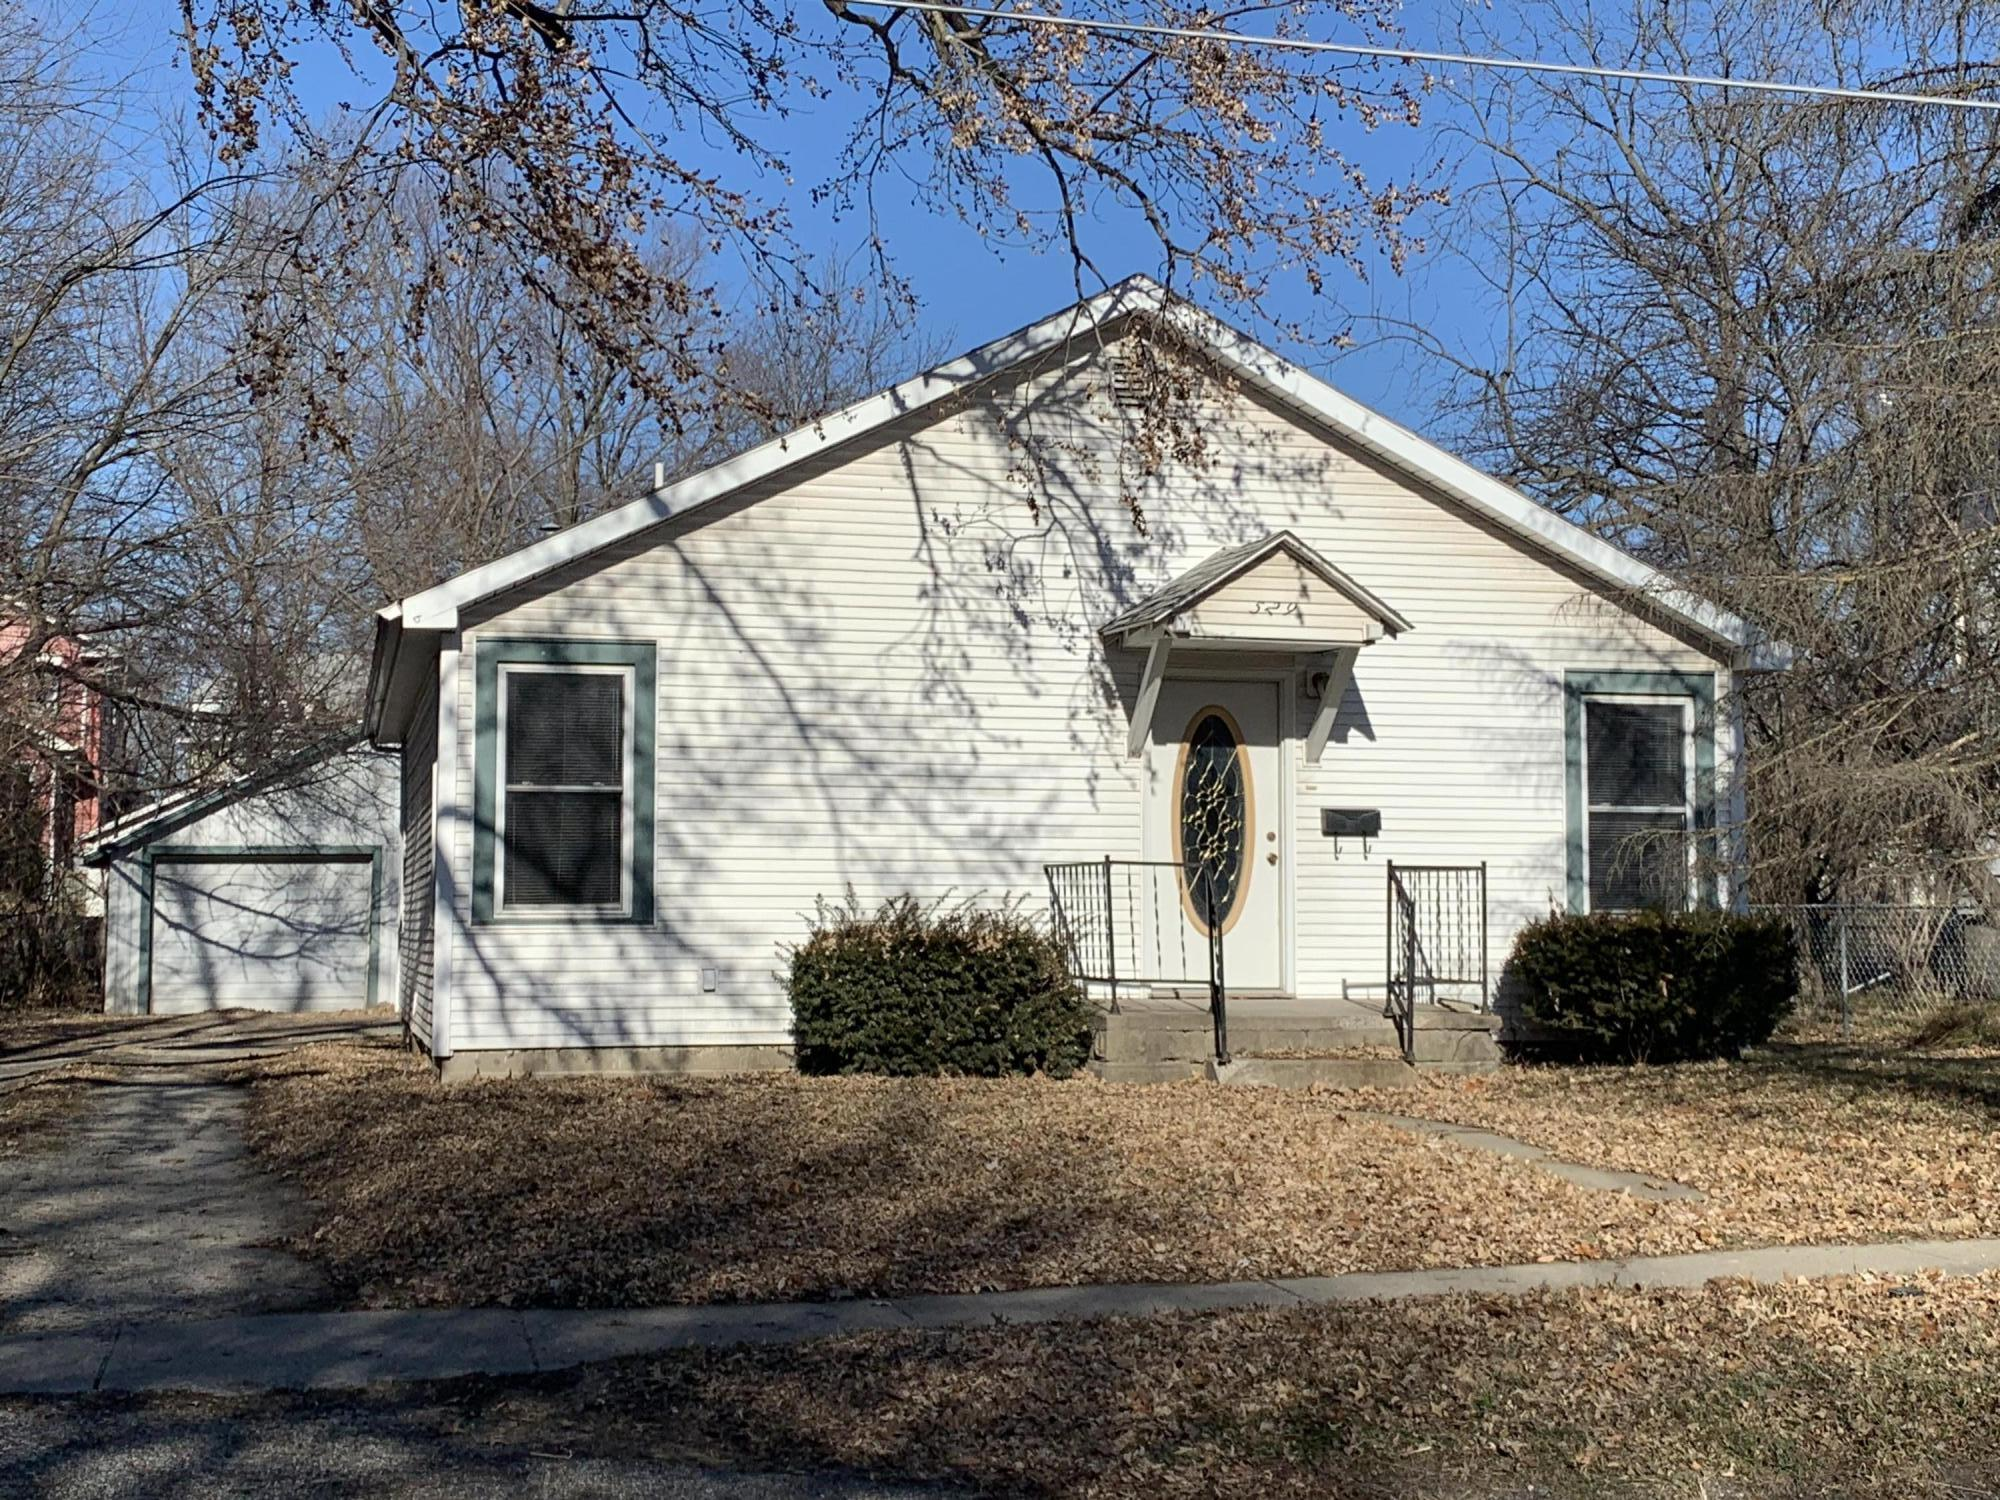 529 W 1ST ST, Maryville, Missouri 64468, 2 Bedrooms Bedrooms, ,1 BathroomBathrooms,Residential,1ST,4634